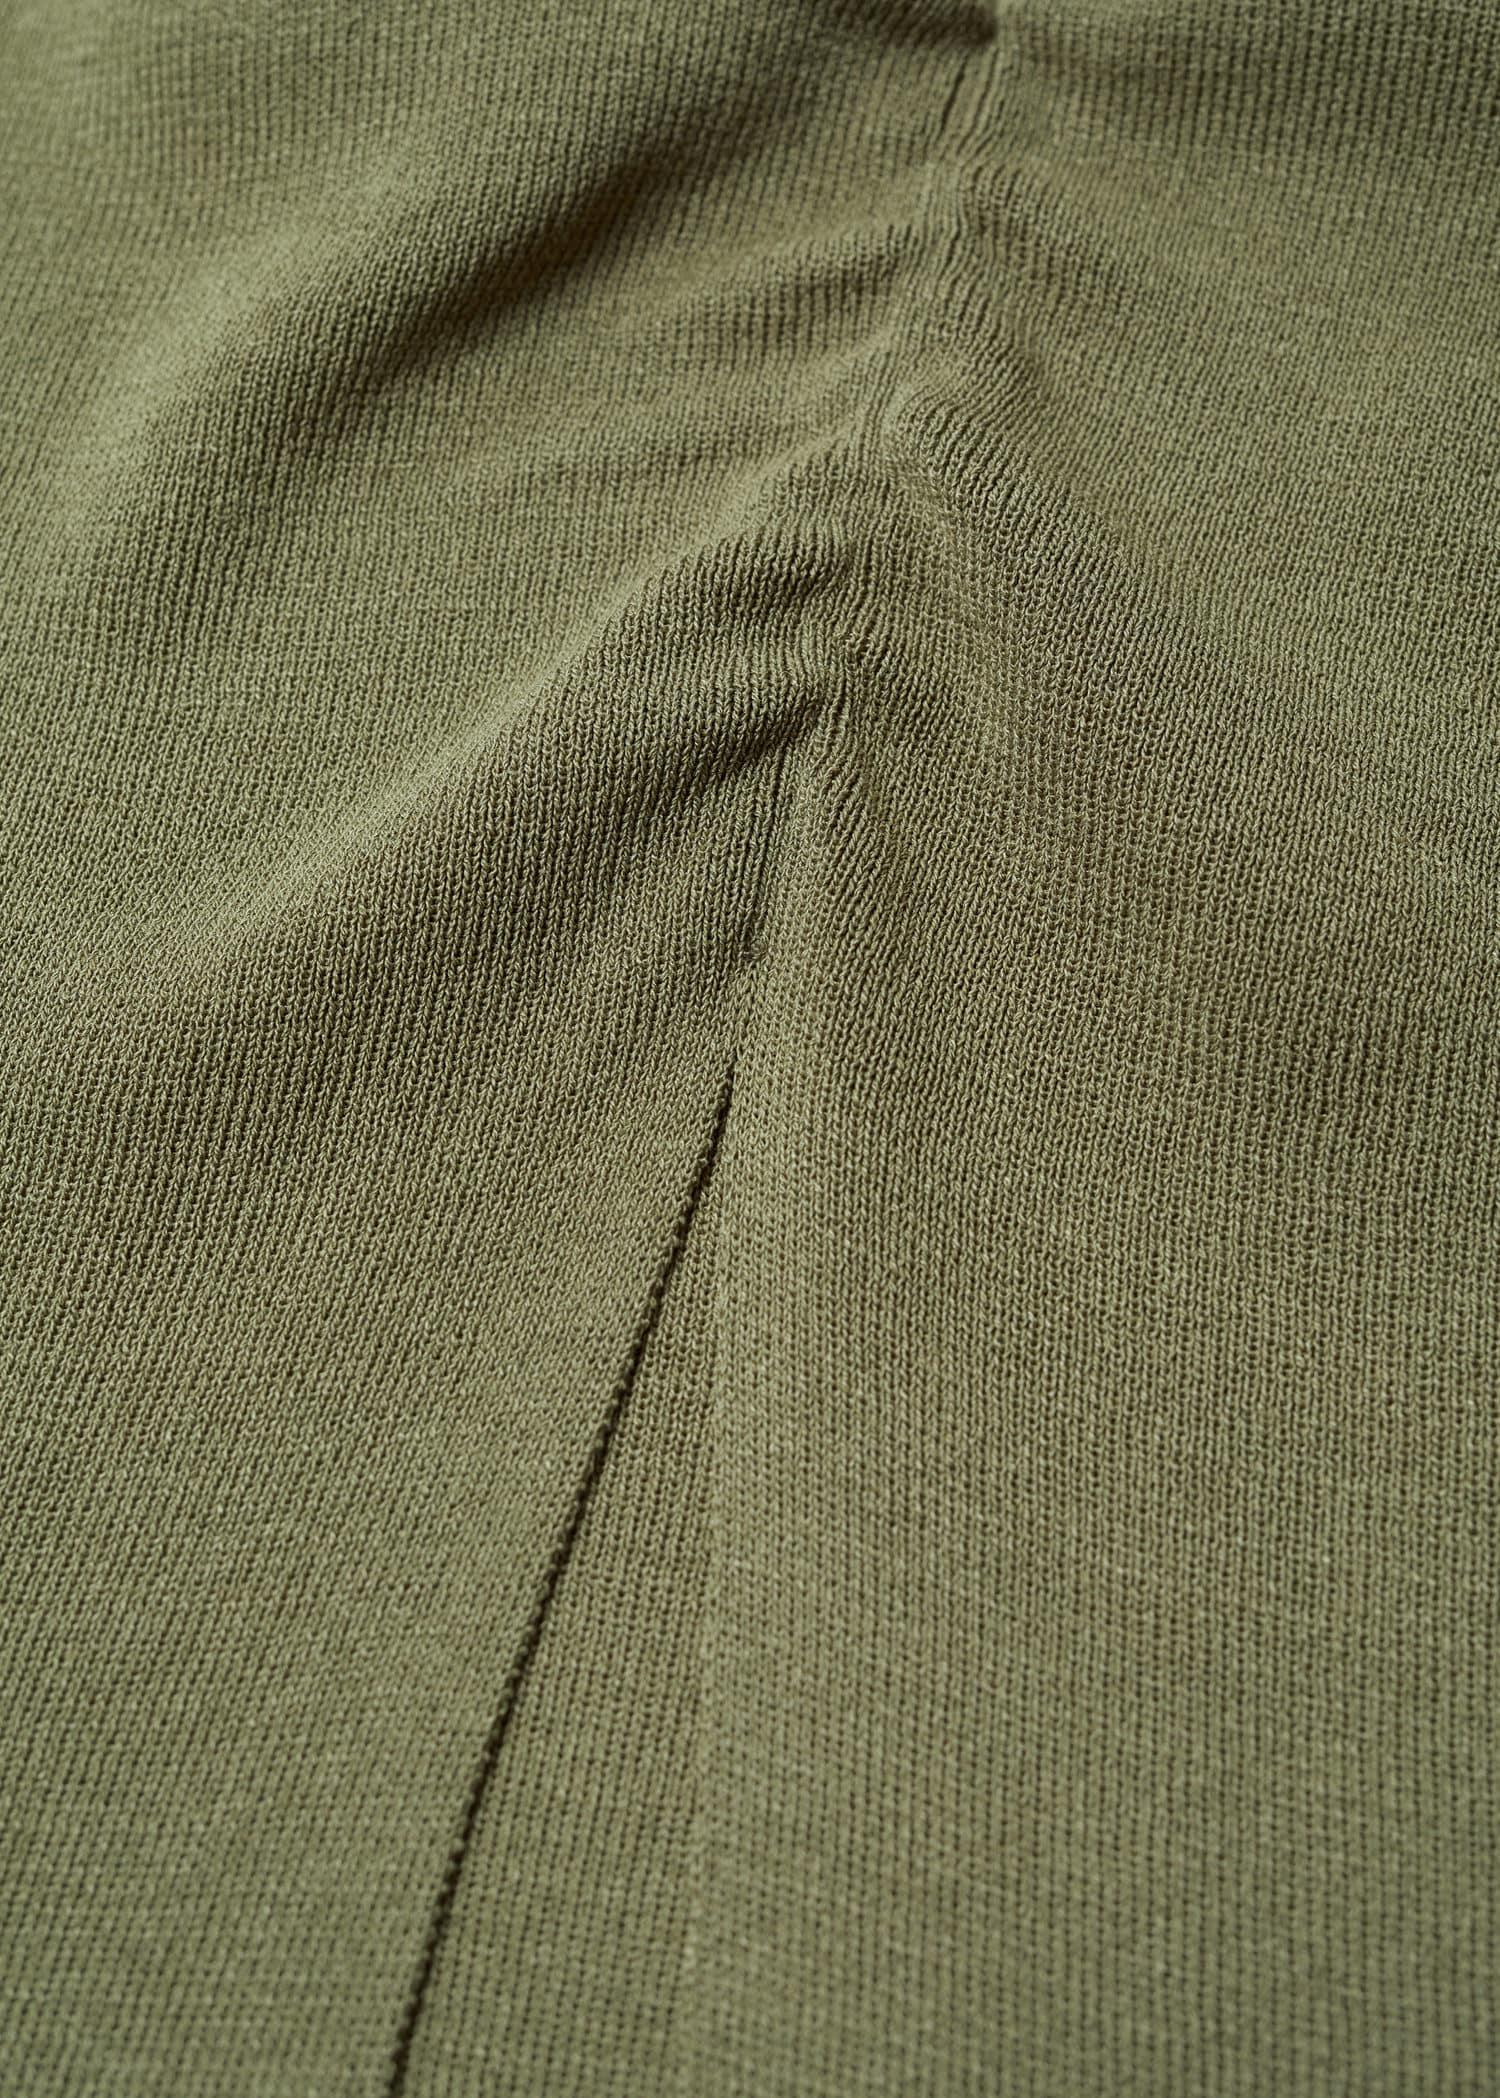 Ruched detail skirt 7